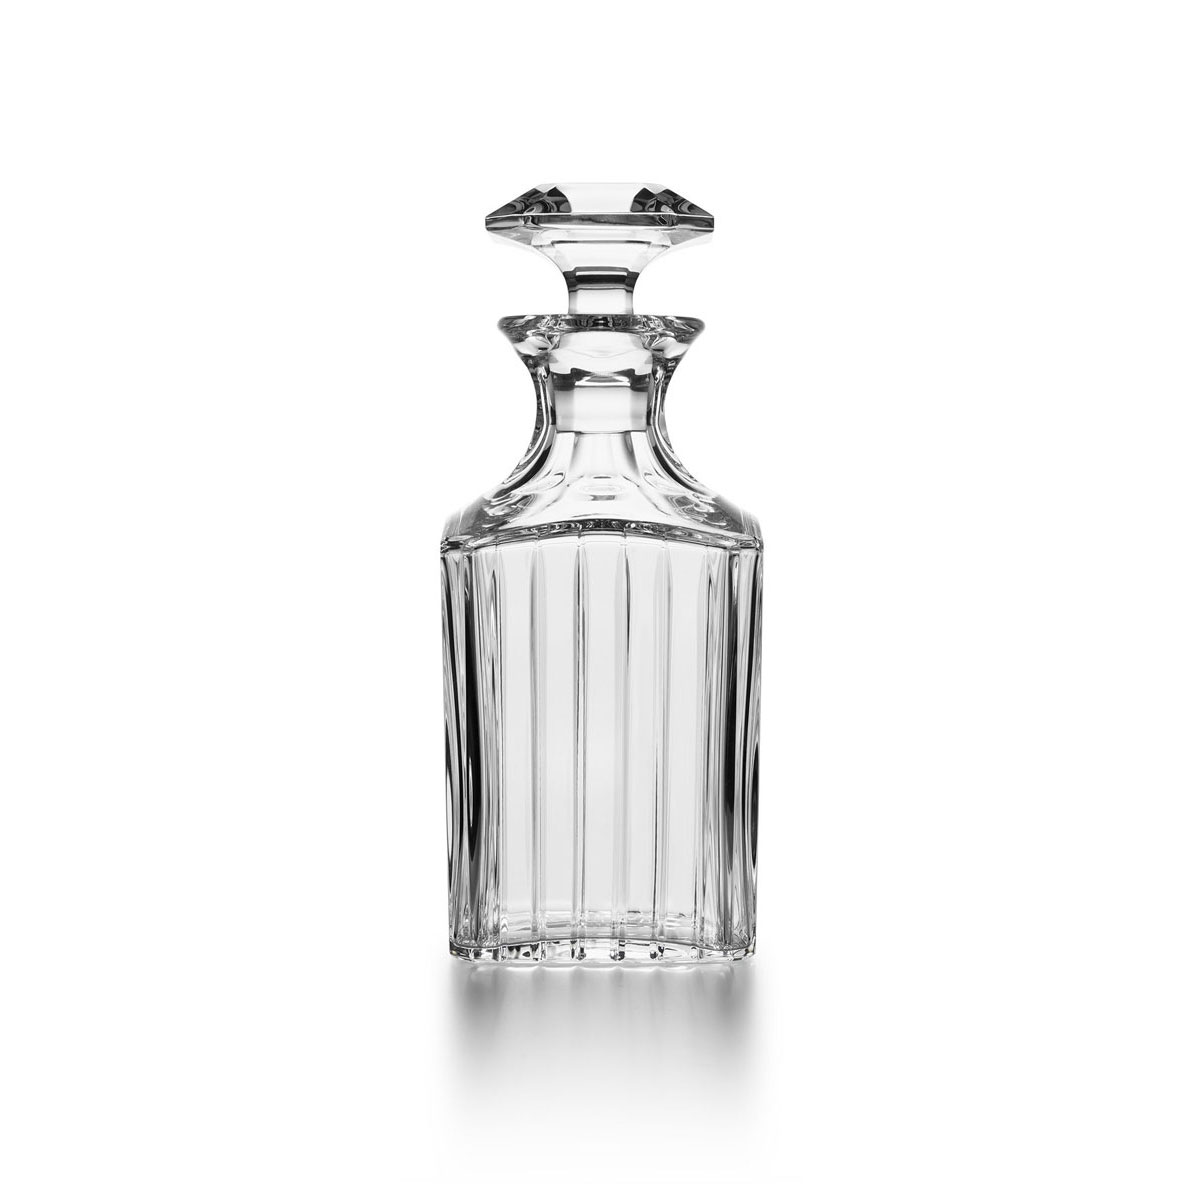 Baccarat Harmonie Square Whiskey Decanter